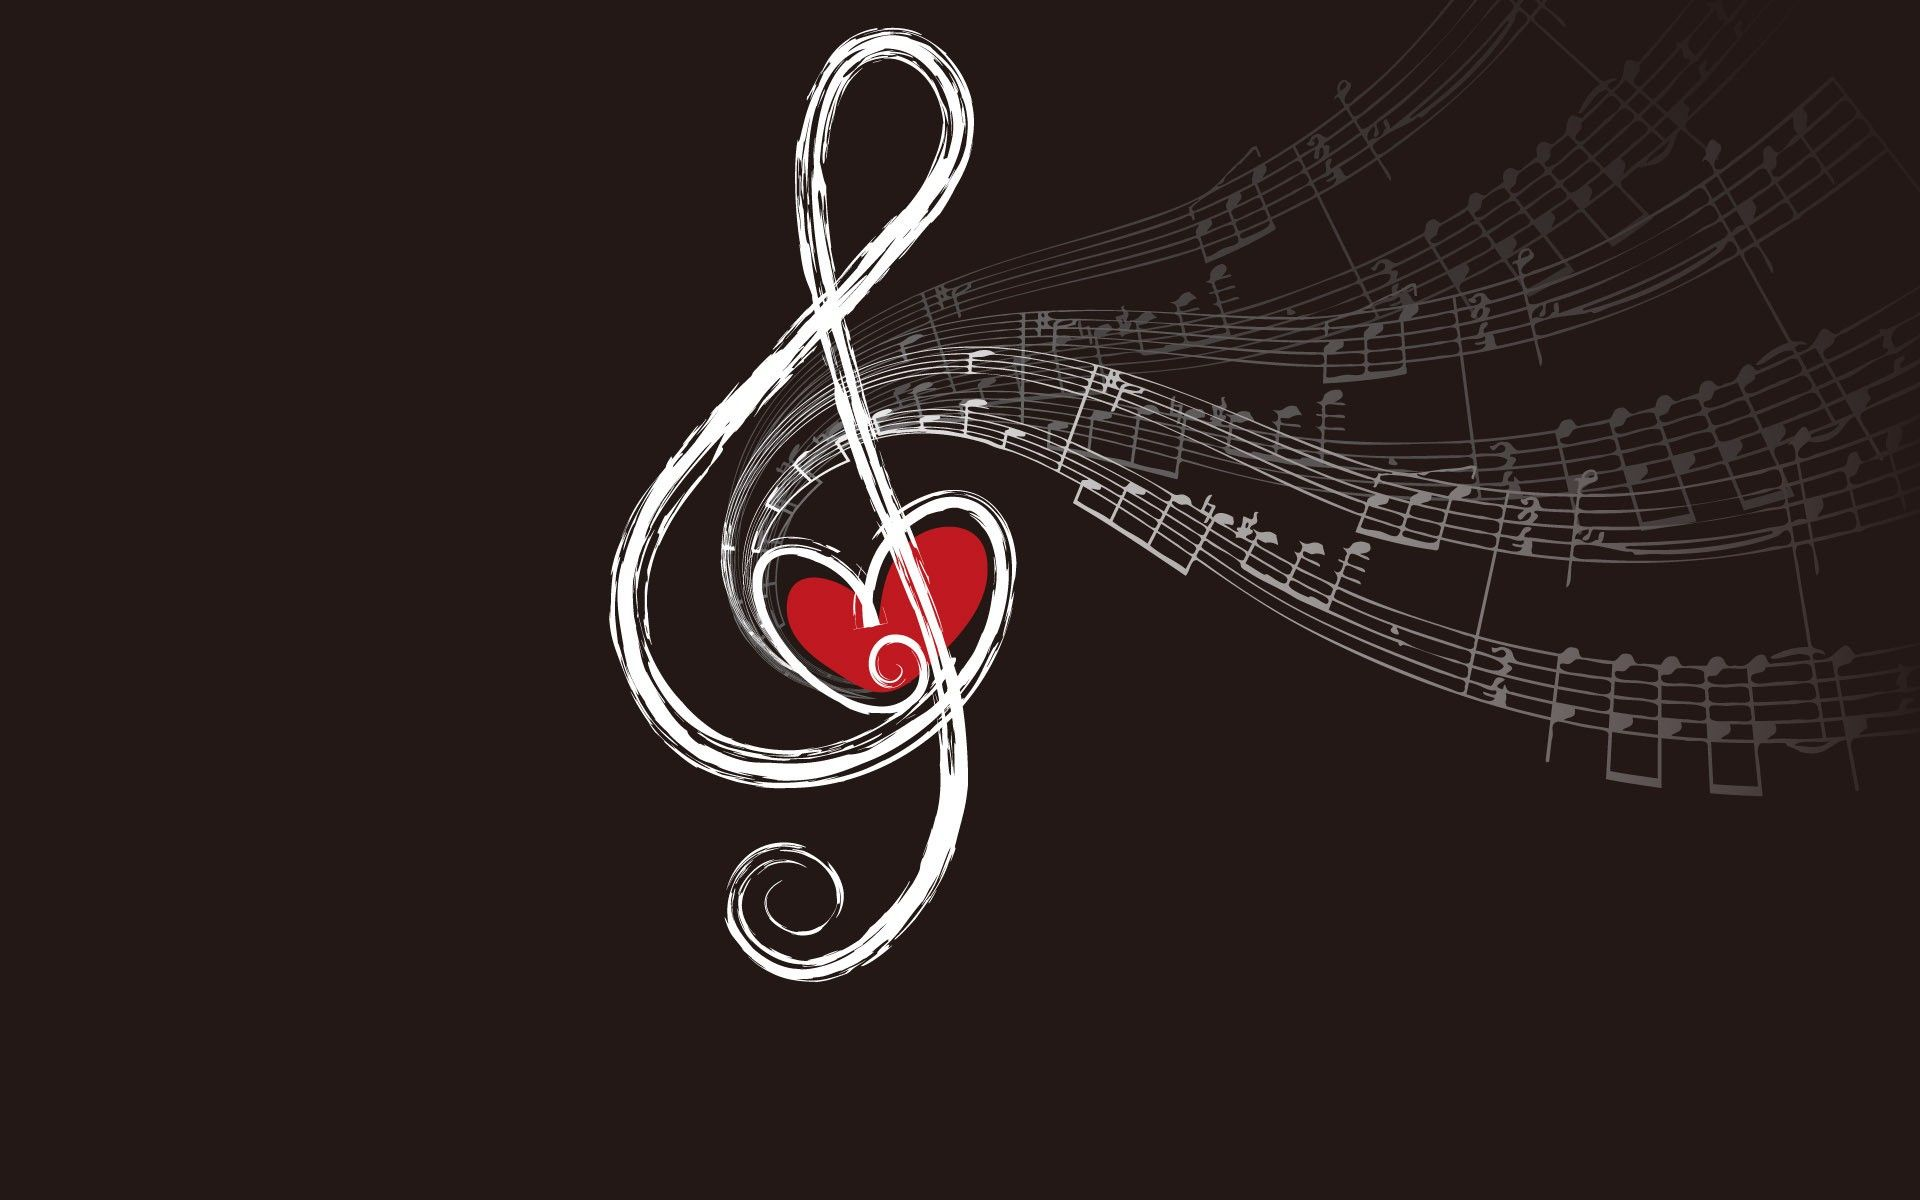 Love Music Wallpaper Love Music Notes Brown Background Fresh New Hd Wallpaper Jpg 1920 1200 Music Wallpaper Music Notes Music Pictures